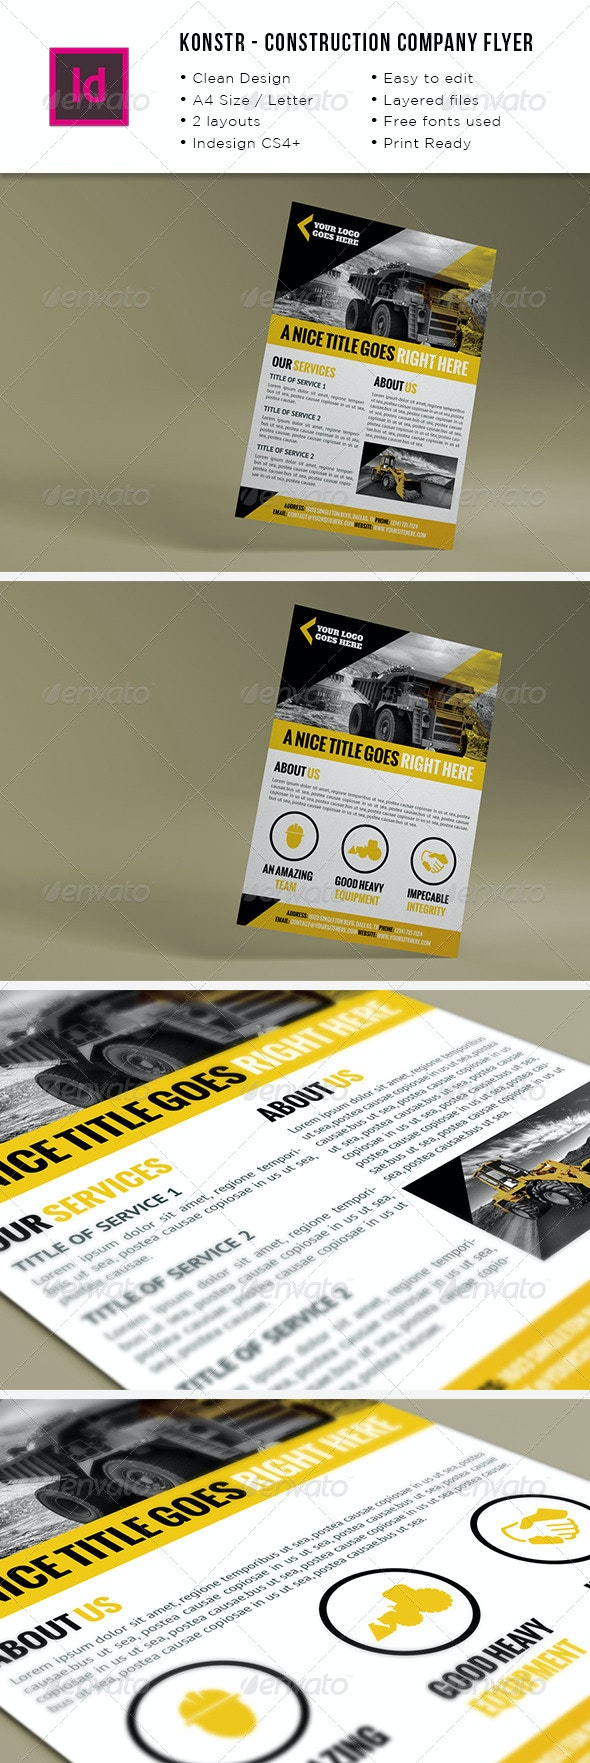 Construction Company A4 / Letter Flyer - Corporate Flyers